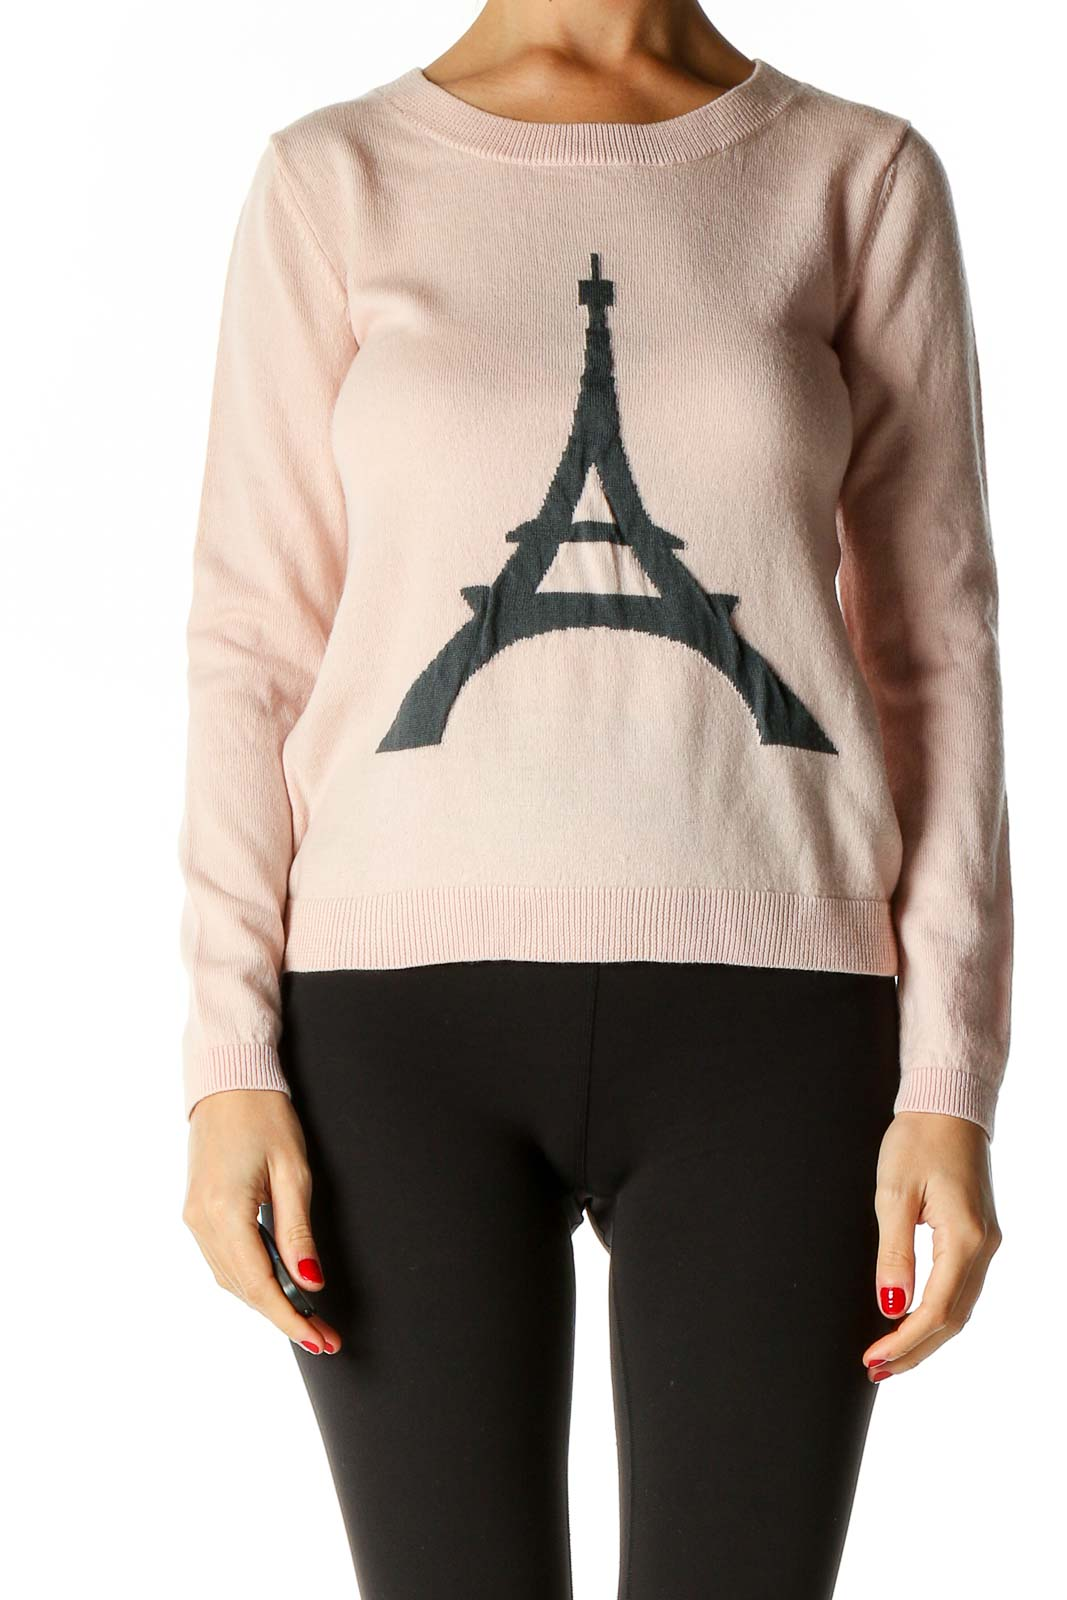 Pink Graphic Print All Day Wear Sweater Front